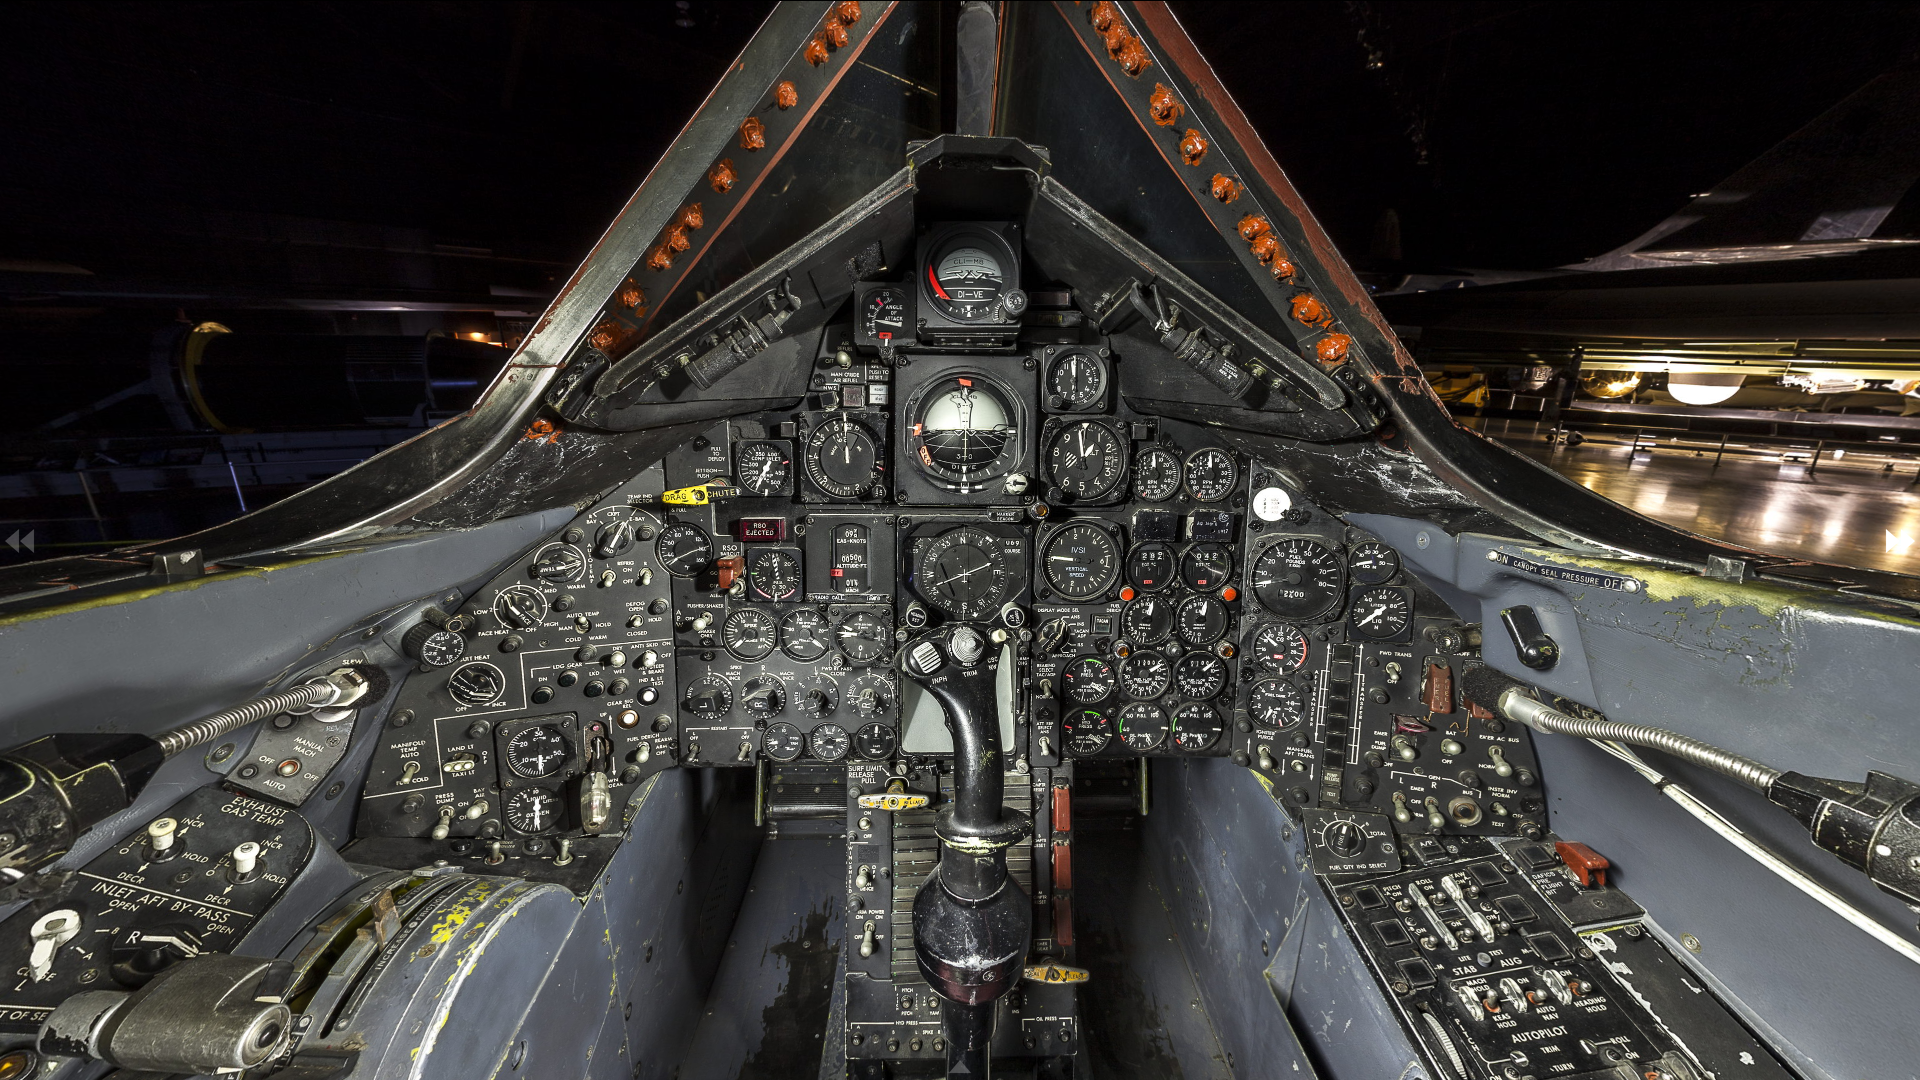 National Air Force Museum >> File:Lockheed SR-71A Blackbird, National Museum of the United States Air Force, Wright-Patterson ...